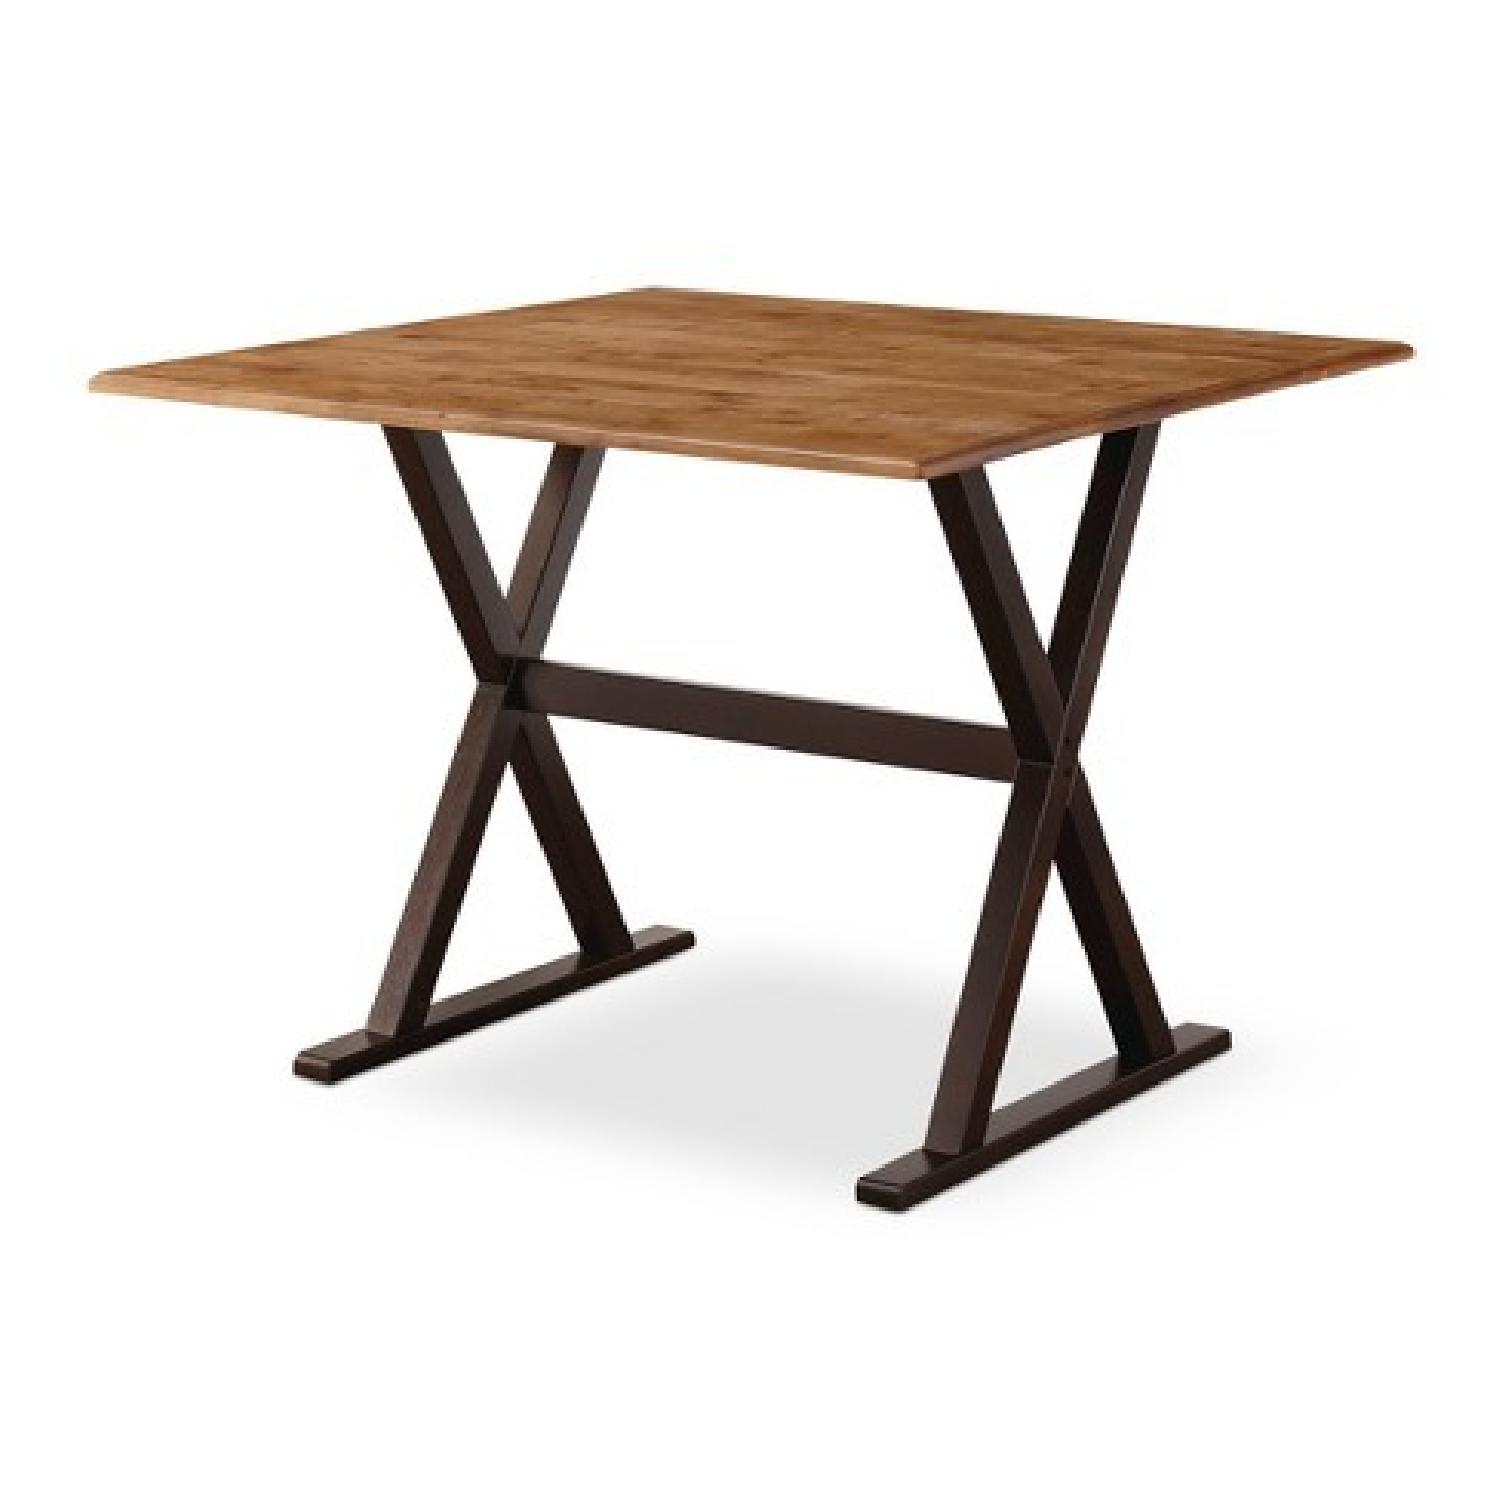 target threshold square drop leaf rustic dining table - Square Wood Dining Table